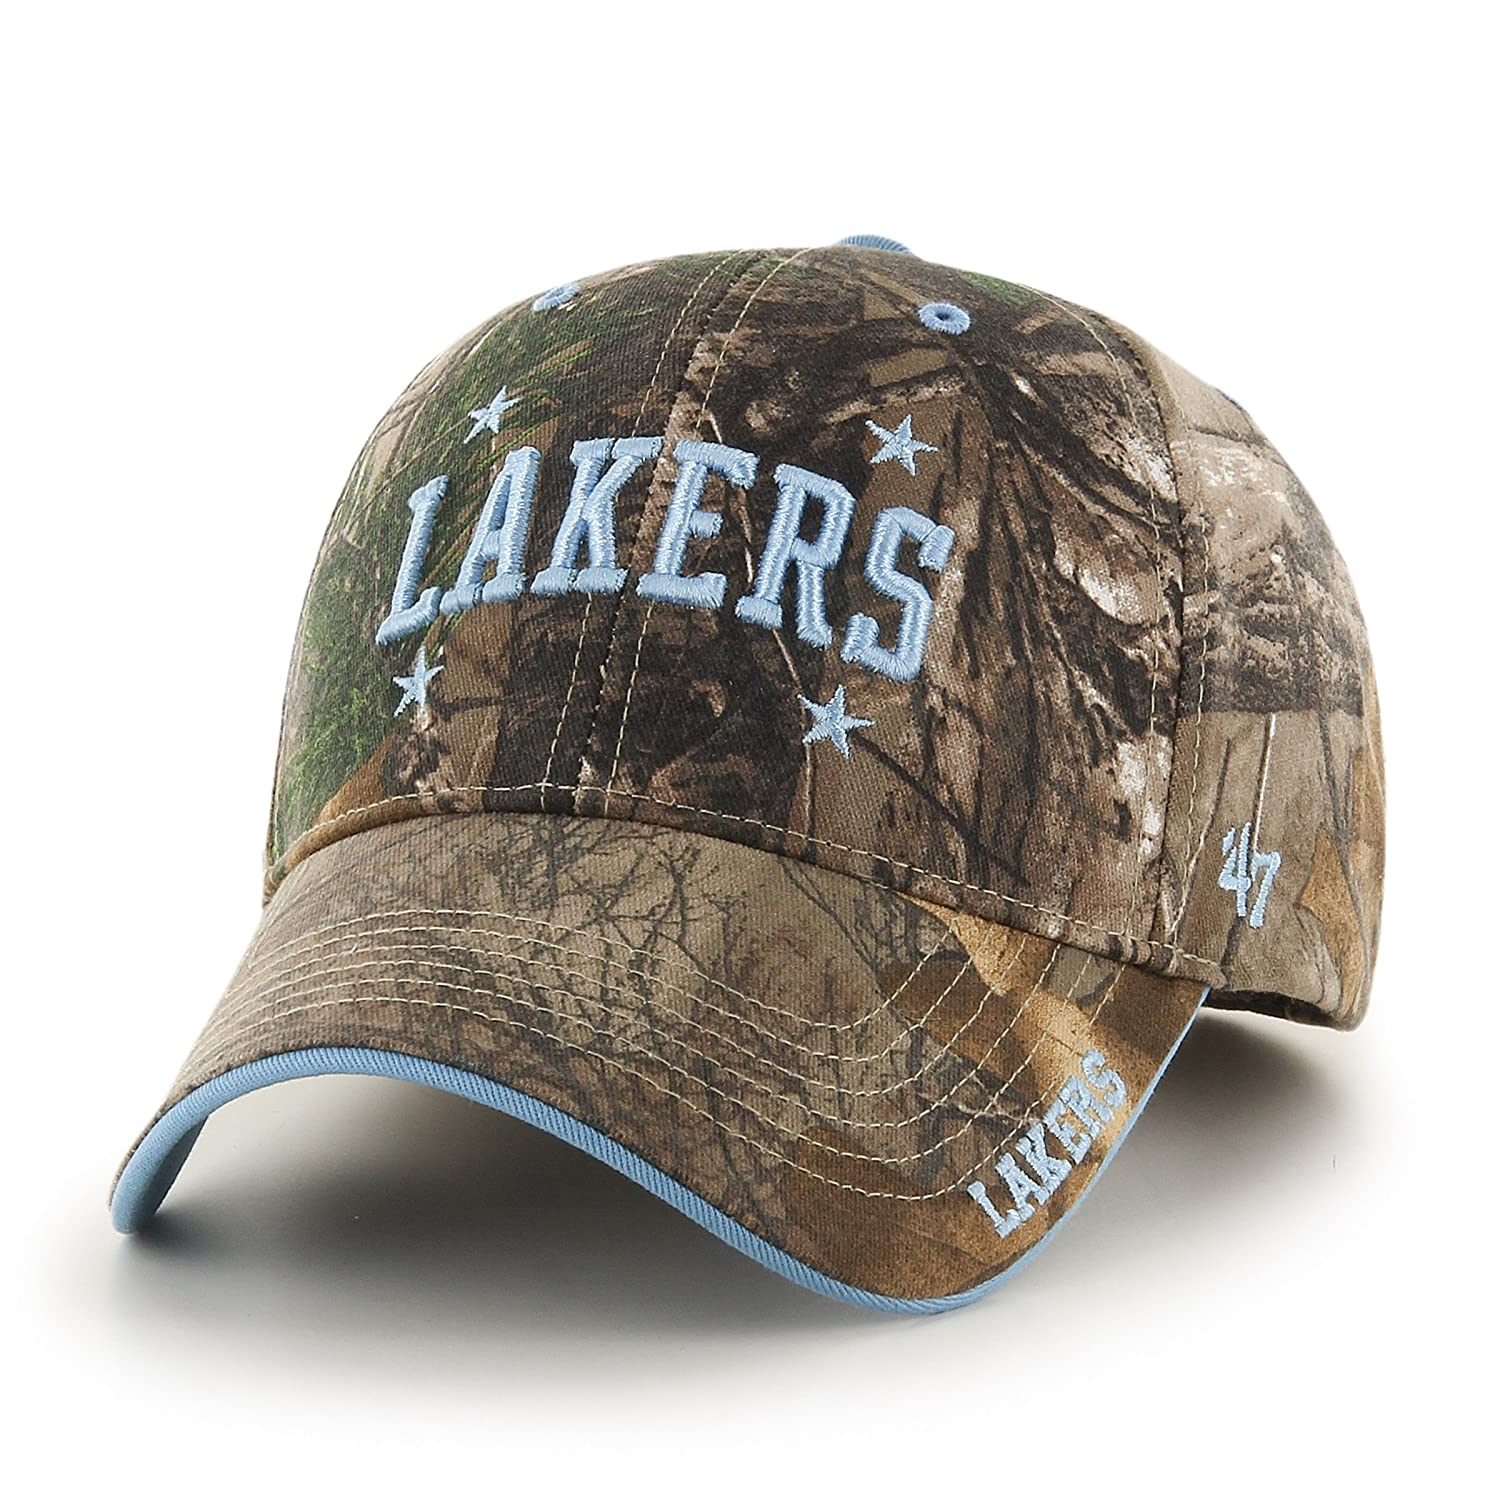 bcd5c4cf38445 Amazon.com   NBA Chicago Bulls  47 Frost MVP Camo Adjustable Hat ...